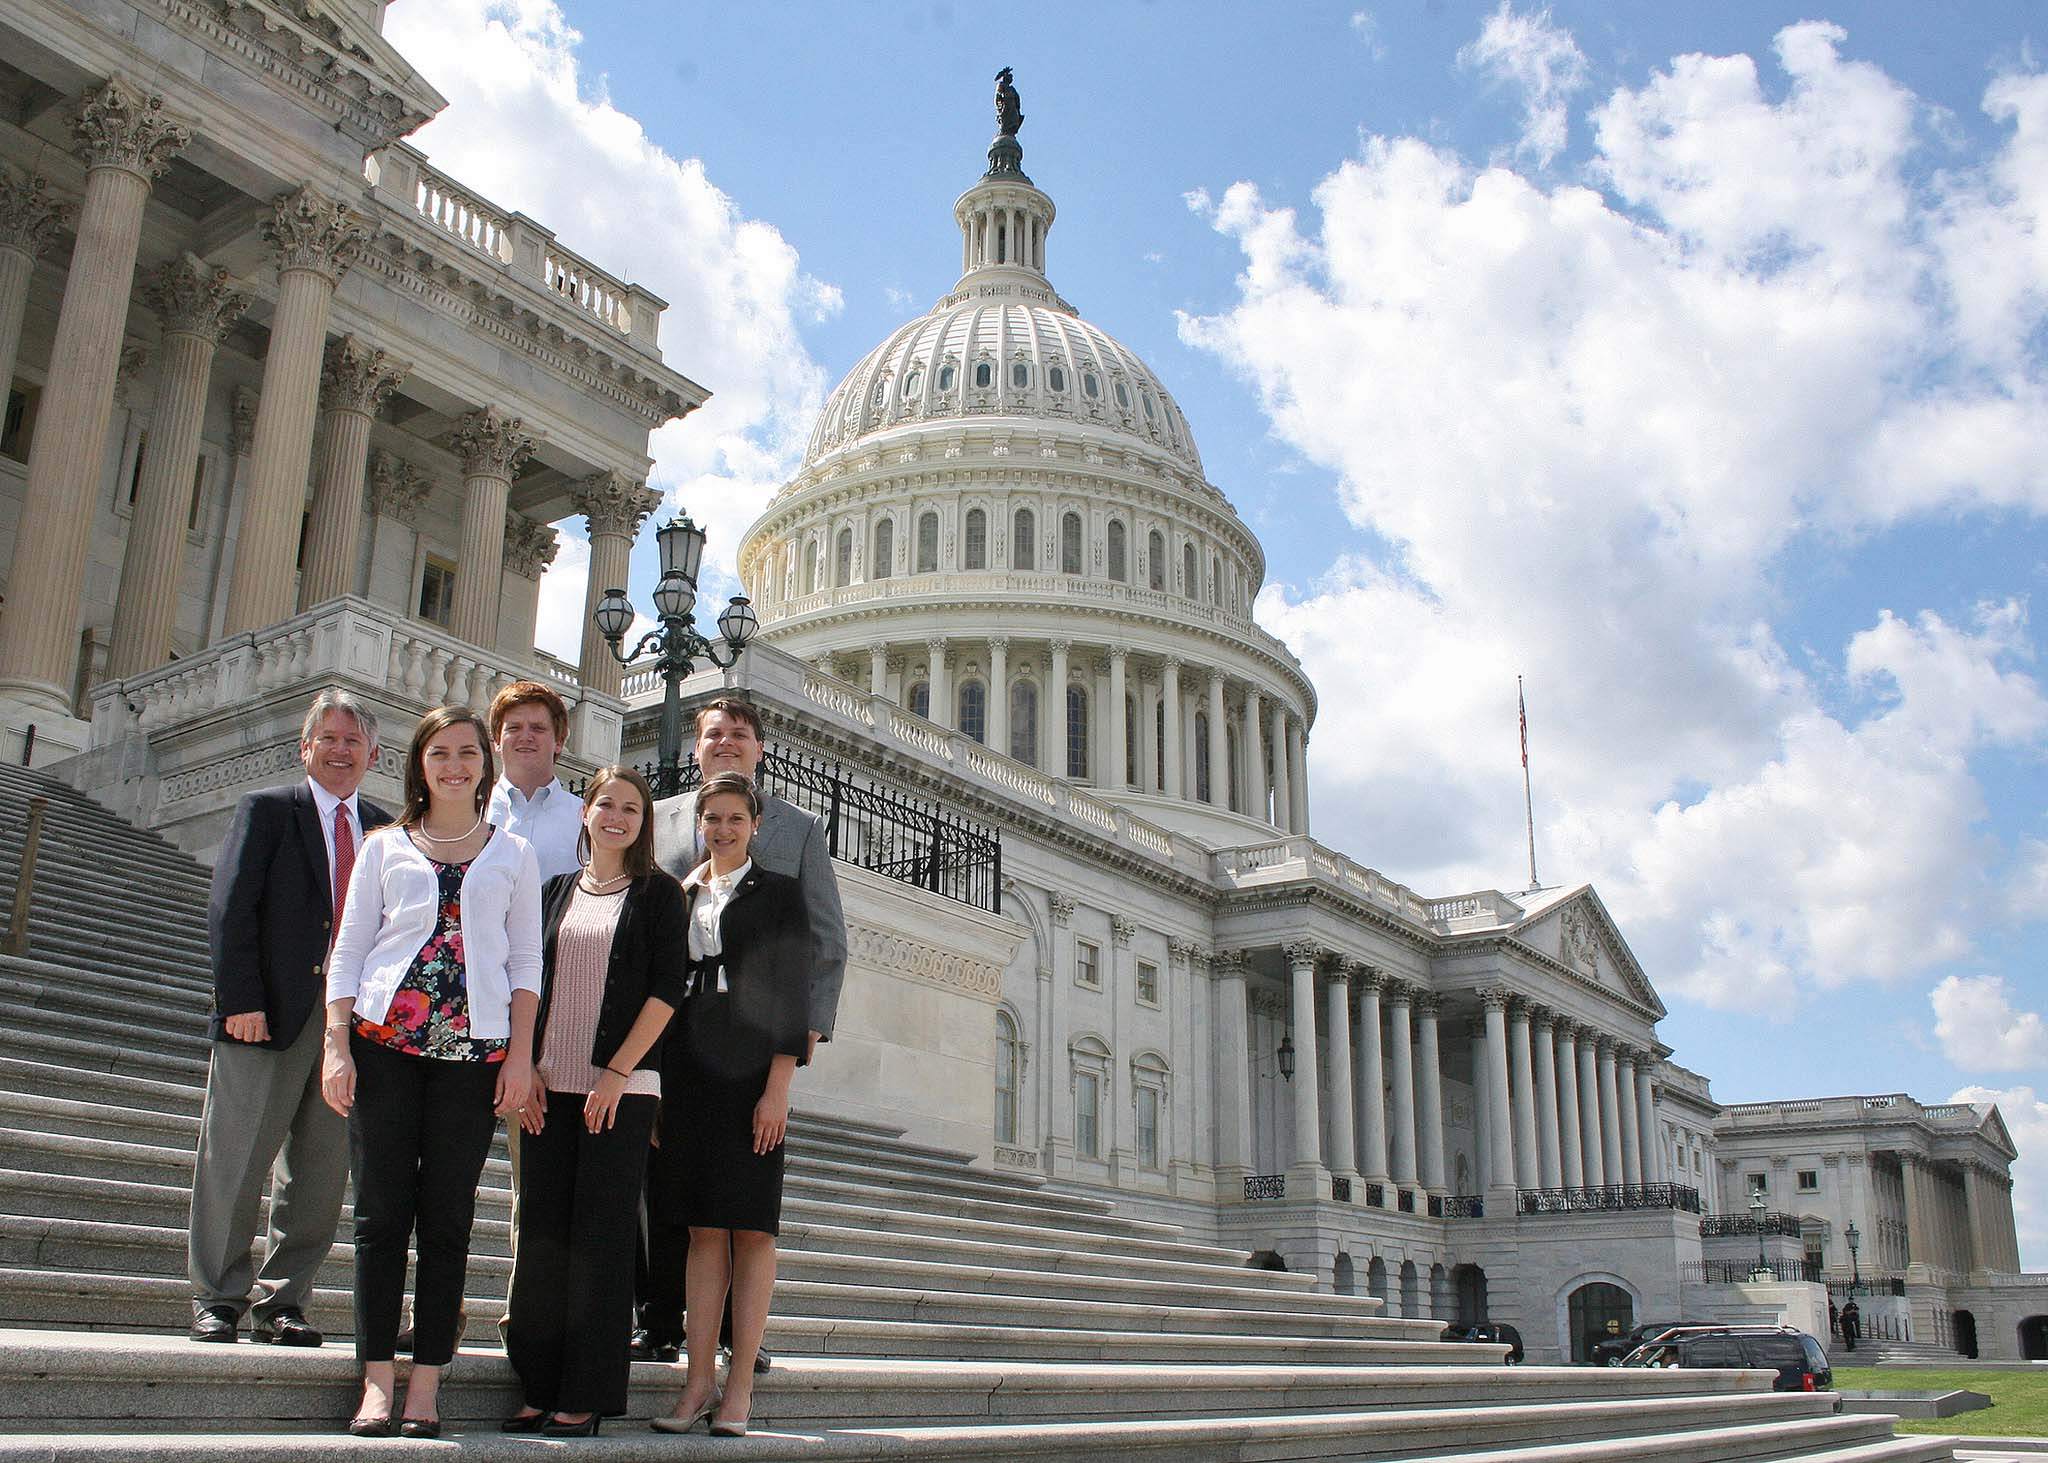 Associate Dean for Academics Josef Broder stands with CAES Agricultural D.C. Fellows Valerie Noles, Rebecca Rykard, Heather Hatzenbuhler, William Moses and Lee Lister at the capital during summer 2013.